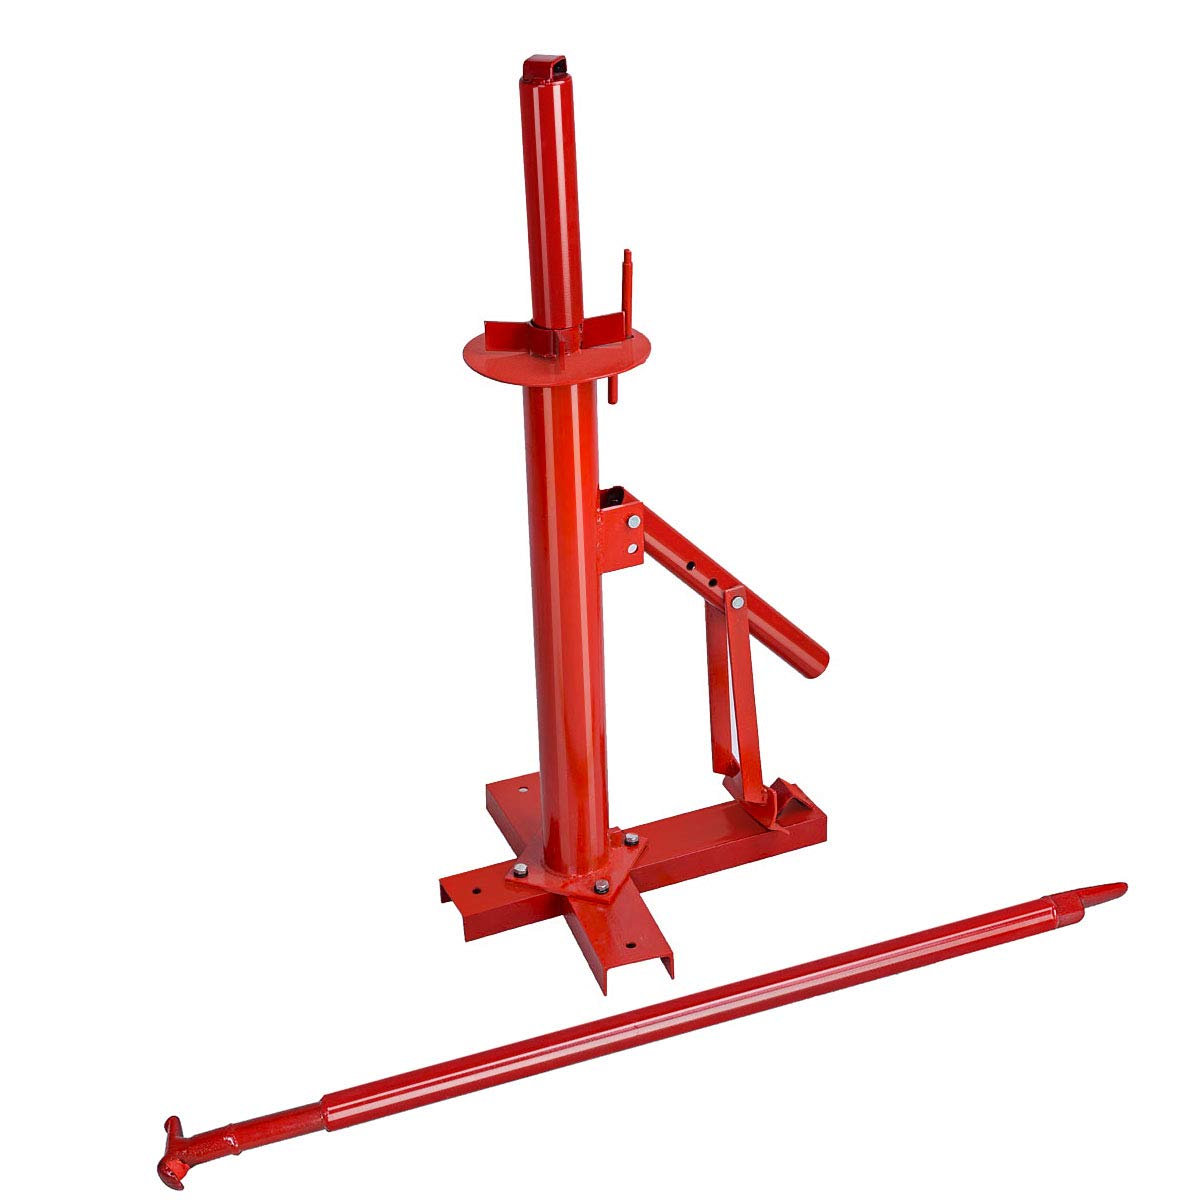 Goplus Manual Portable Hand Tire Changer Bead Breaker Tool Mounting Home Shop Auto by Goplus (Image #4)